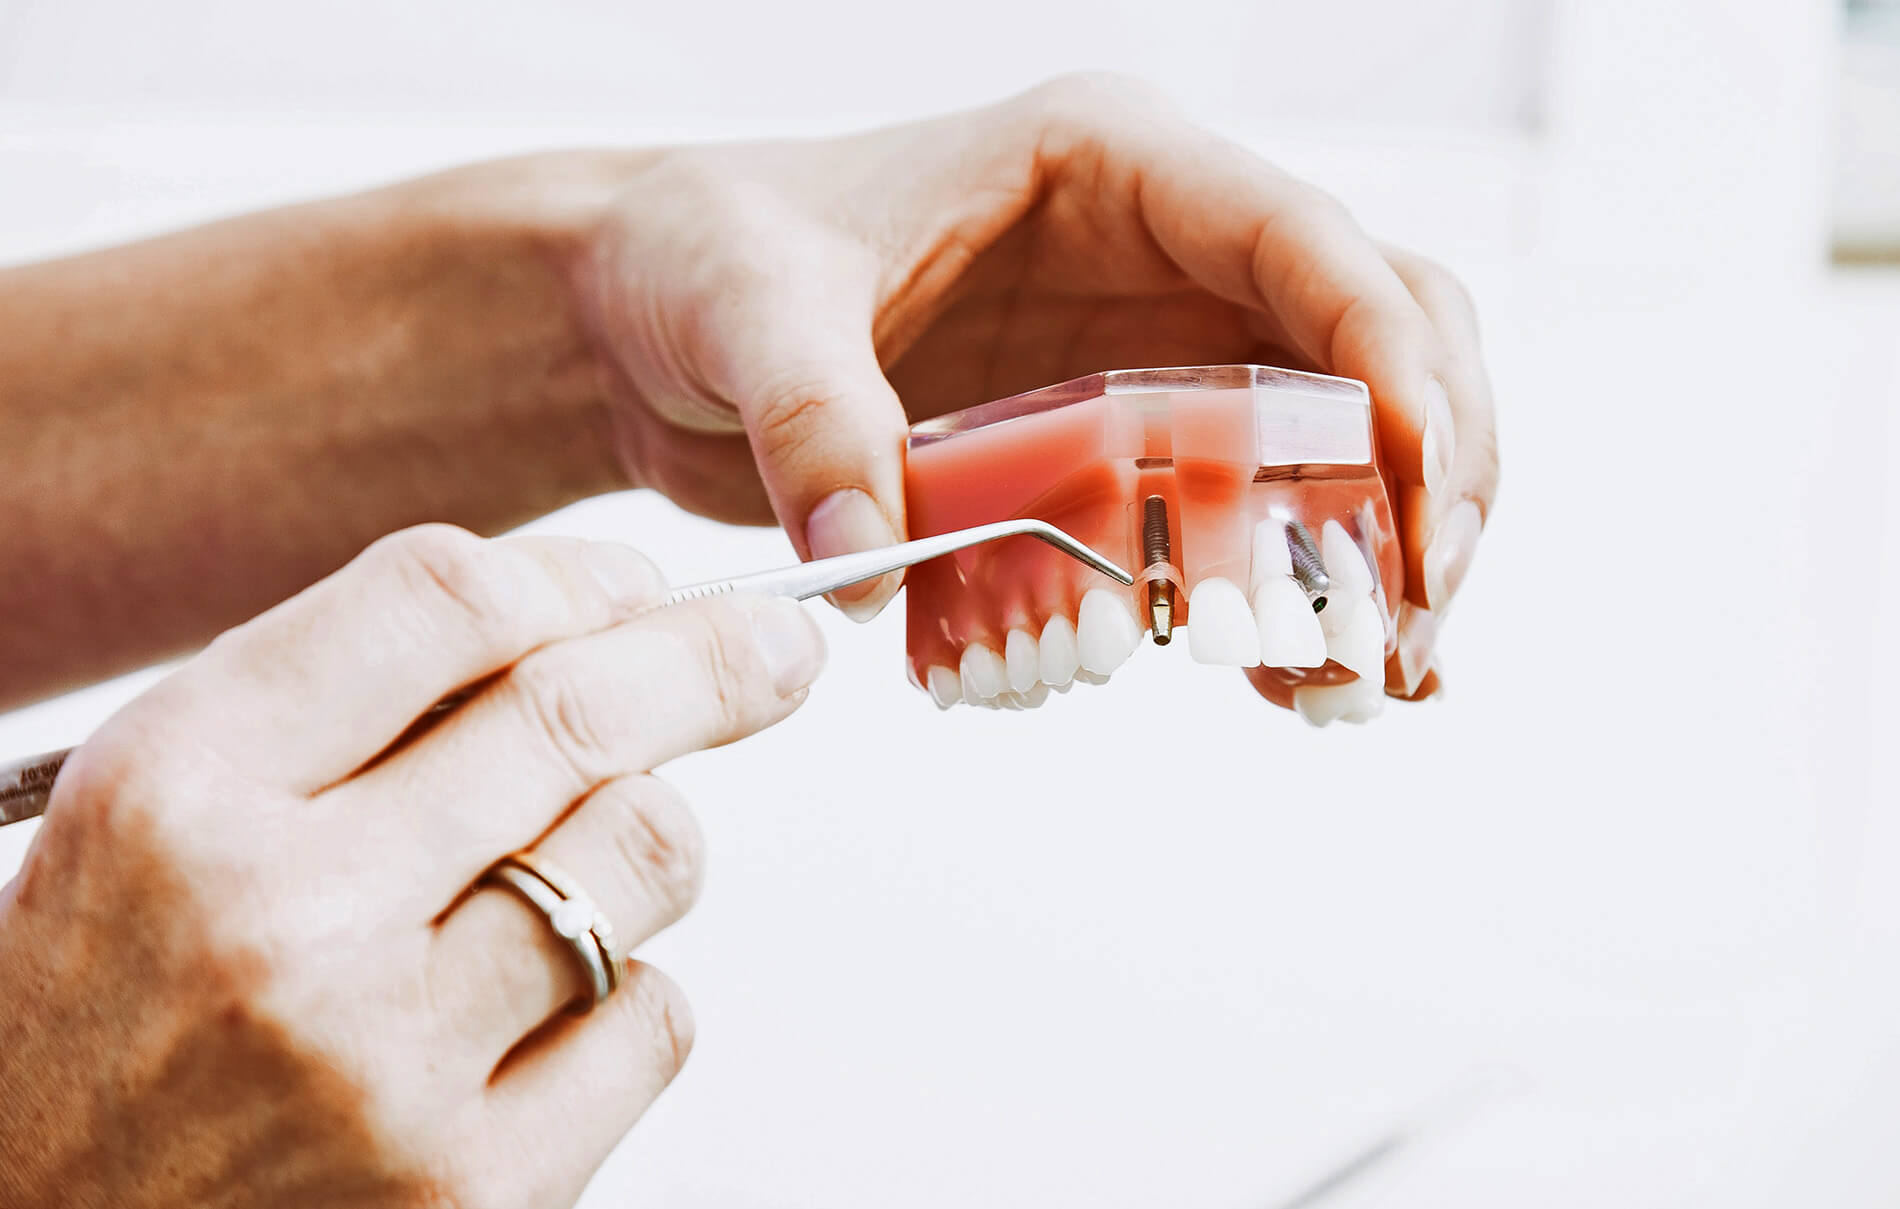 Dental implant made possible by insurance for seniors